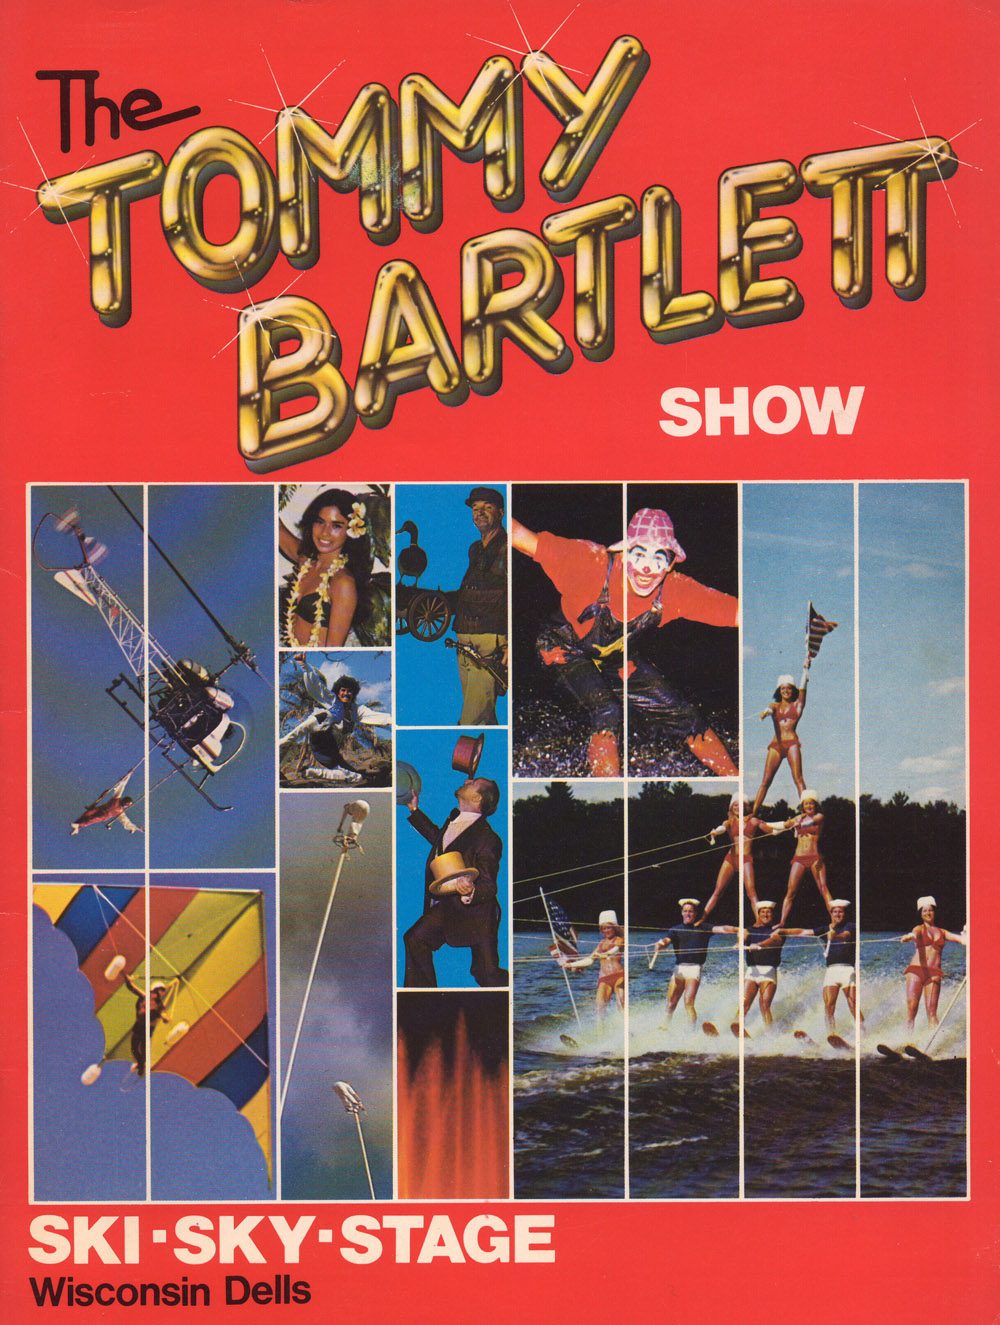 adventures-water-skiing-hydrofoiling-1969-tommy-bartlett-ski-show-aqua-clown